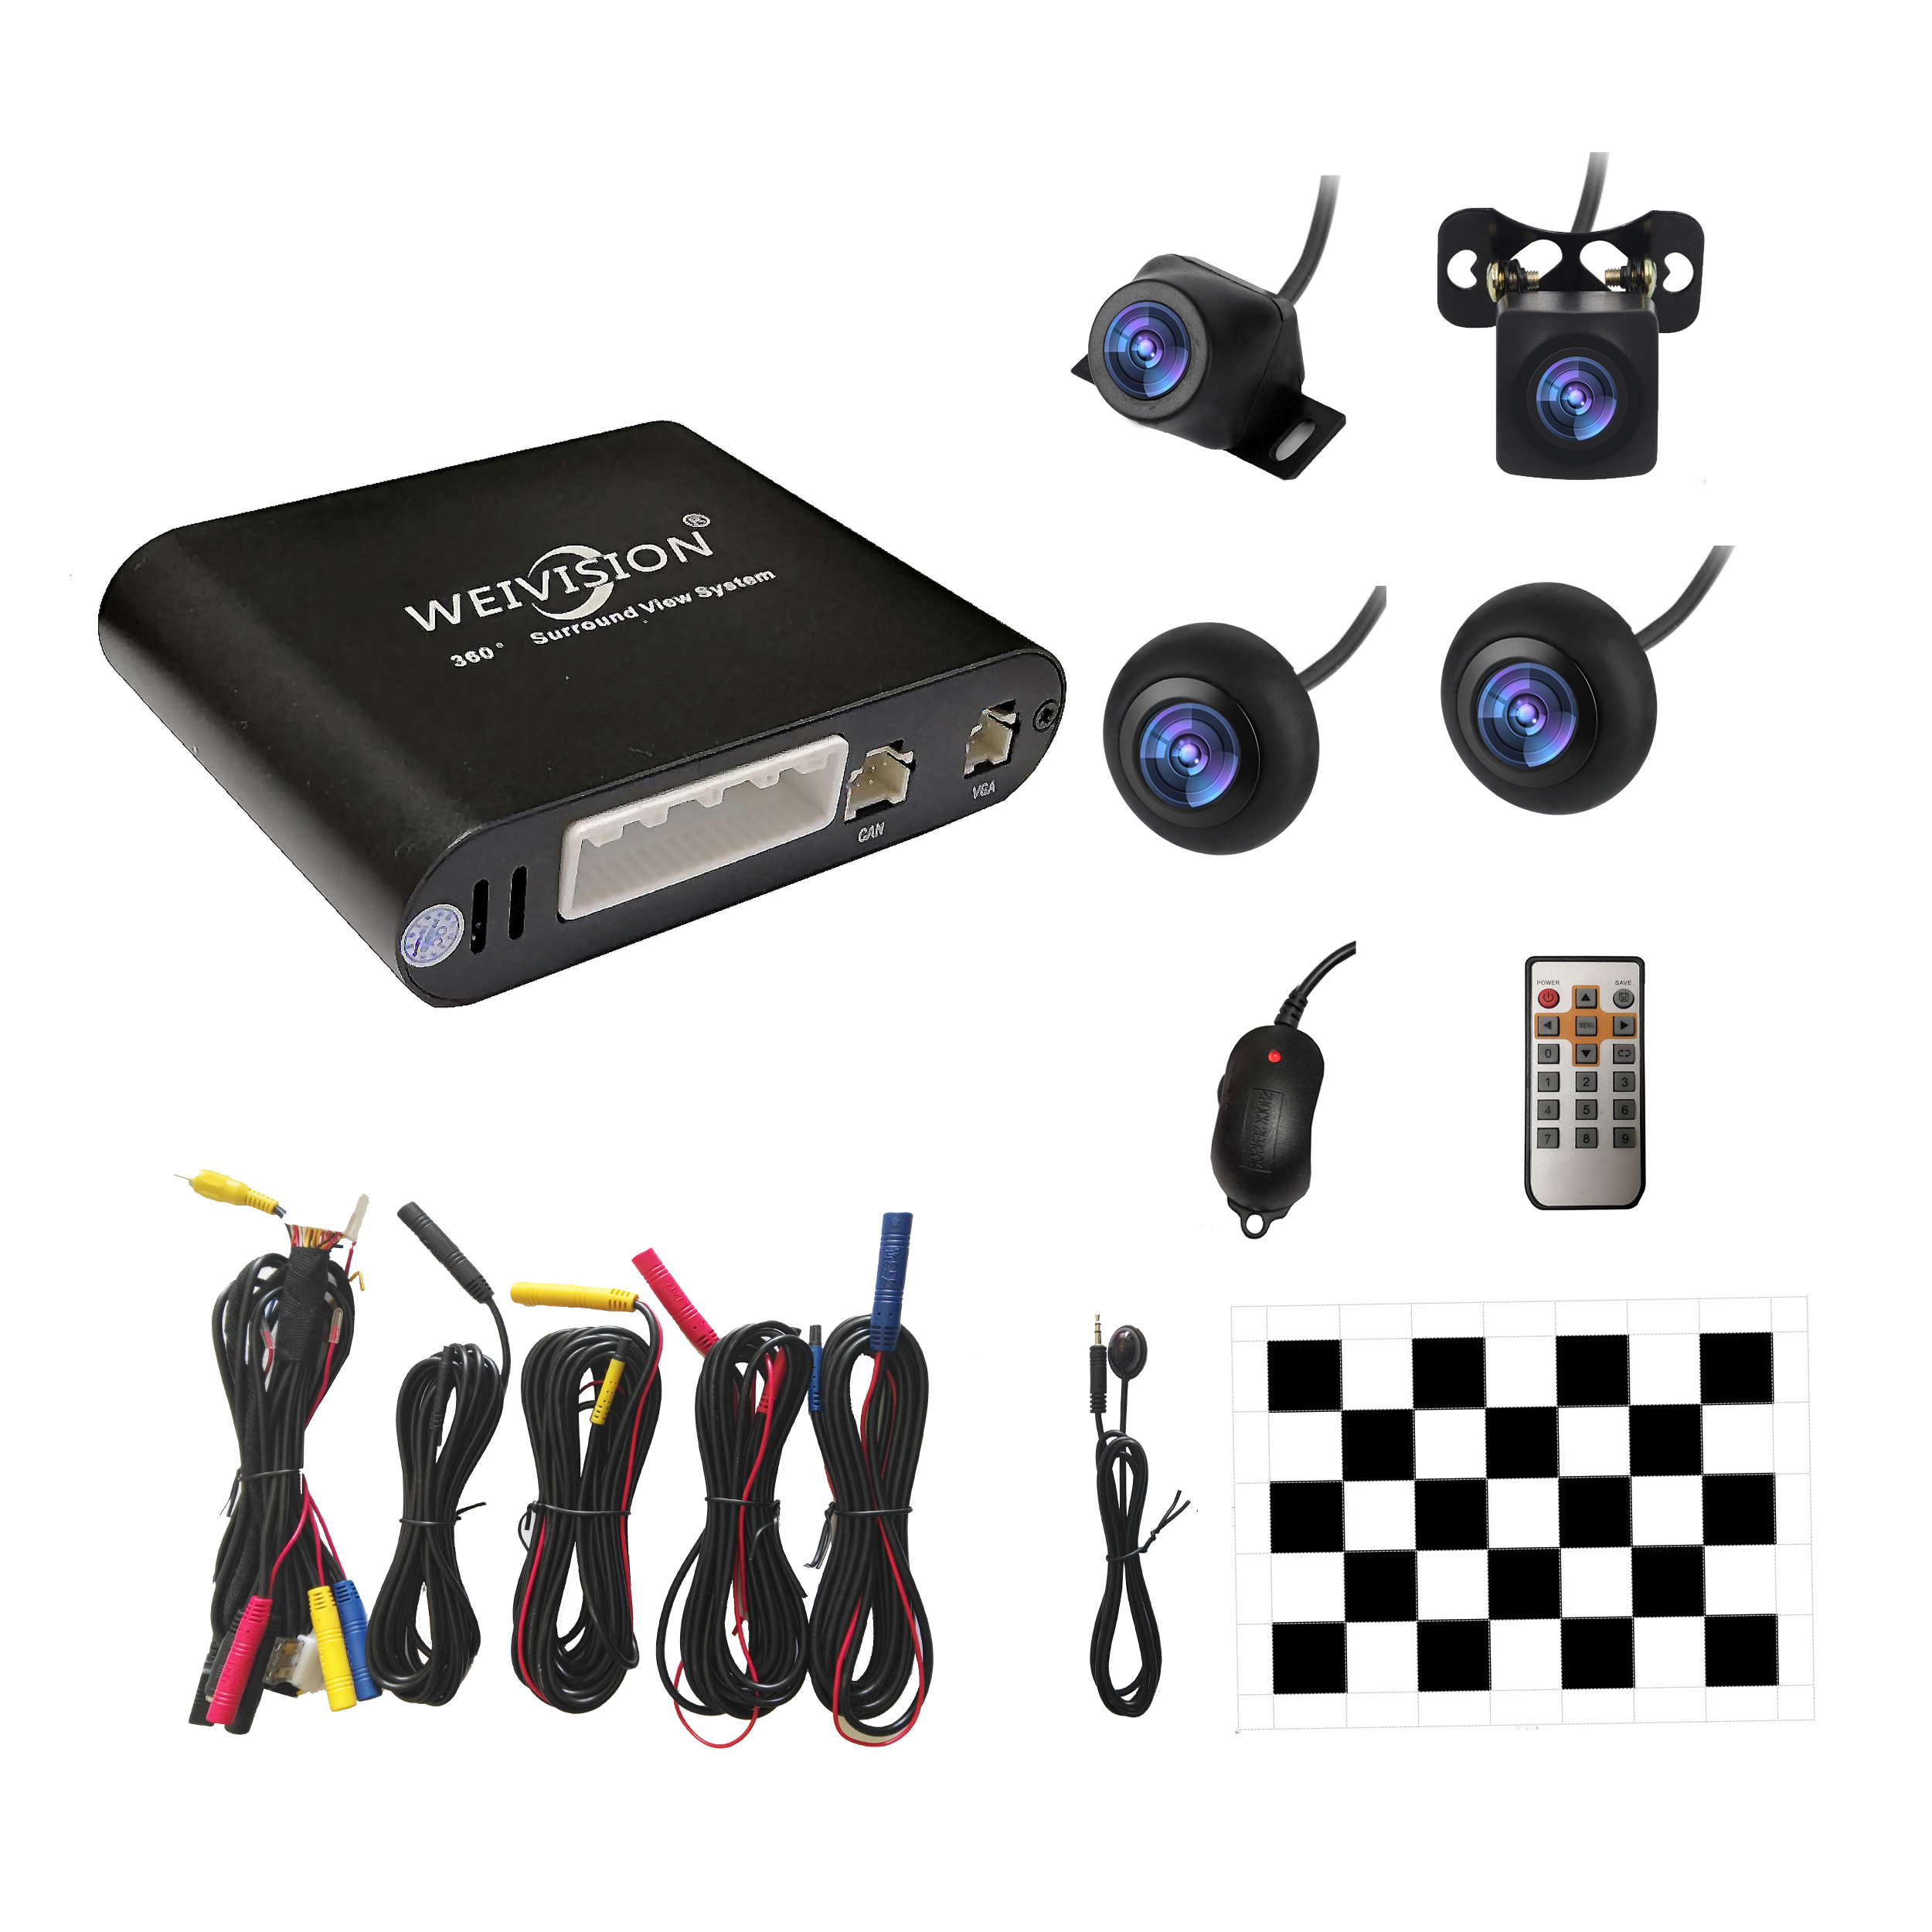 Car Accessories Weivision Universal 360 Degree bird View Surround System Panoramic View All round View Camera